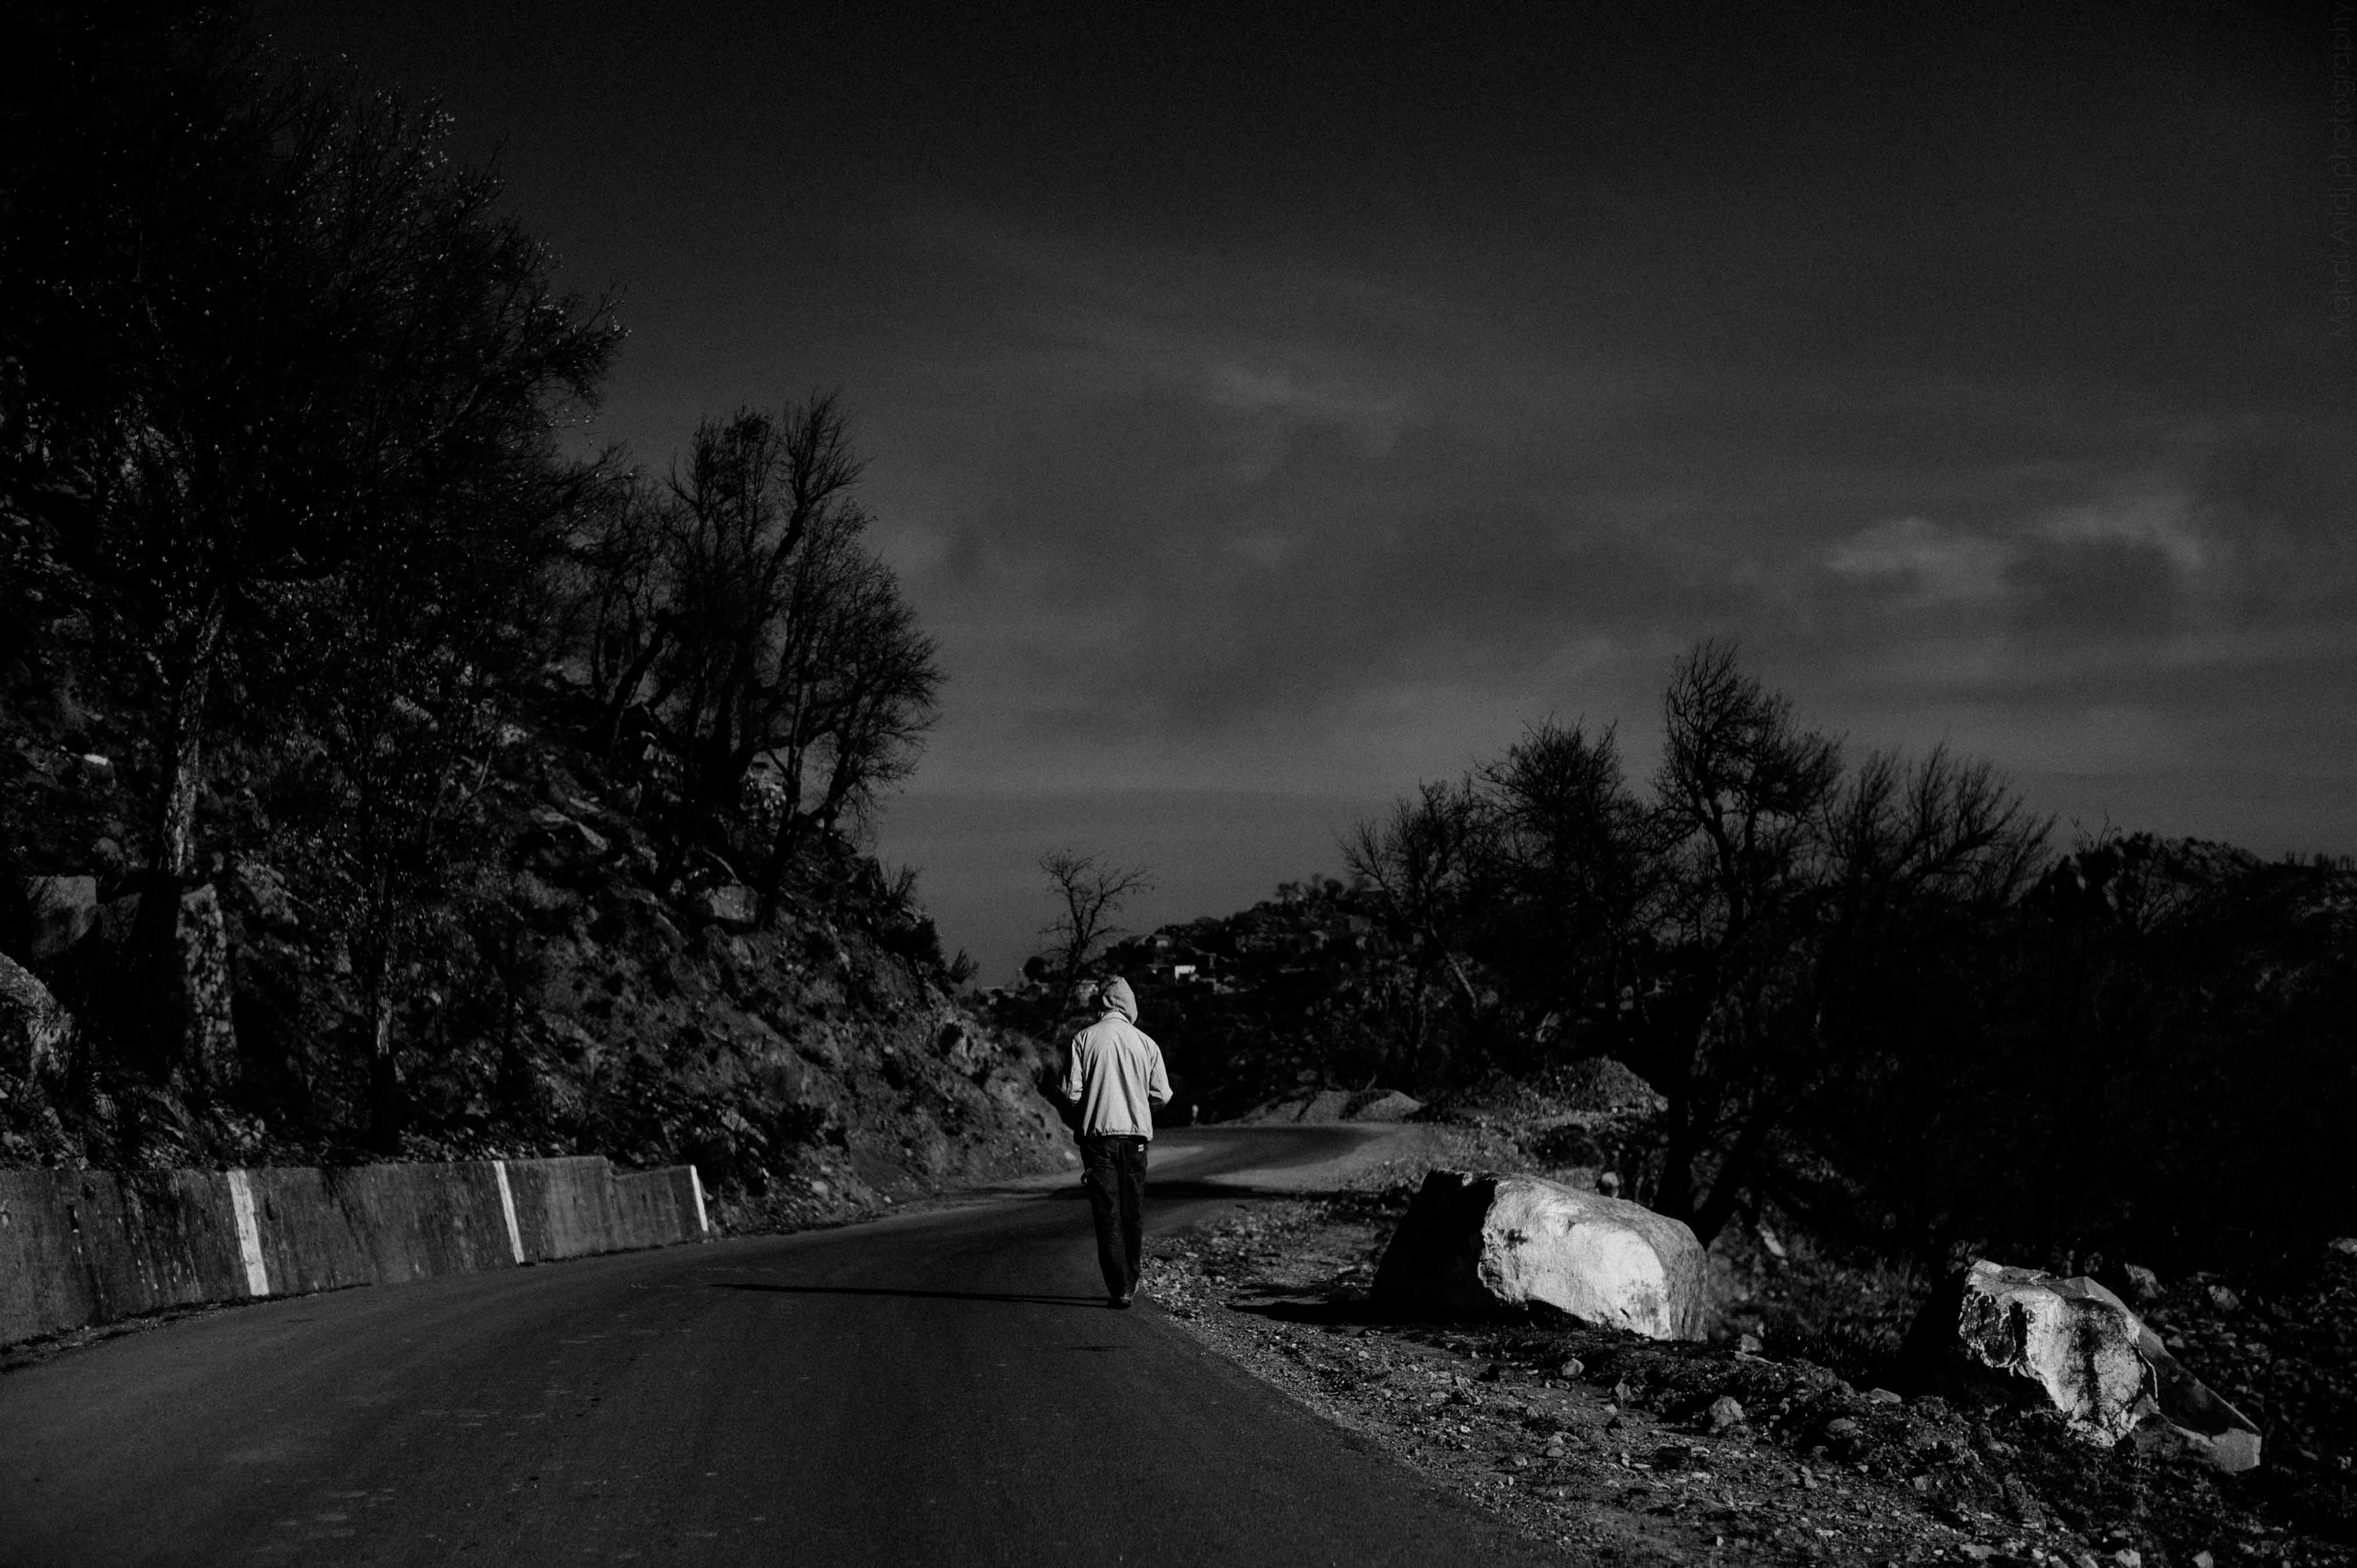 Homme se baladant sur la route d'Azeffoun - Man walking along the Azeffoun road